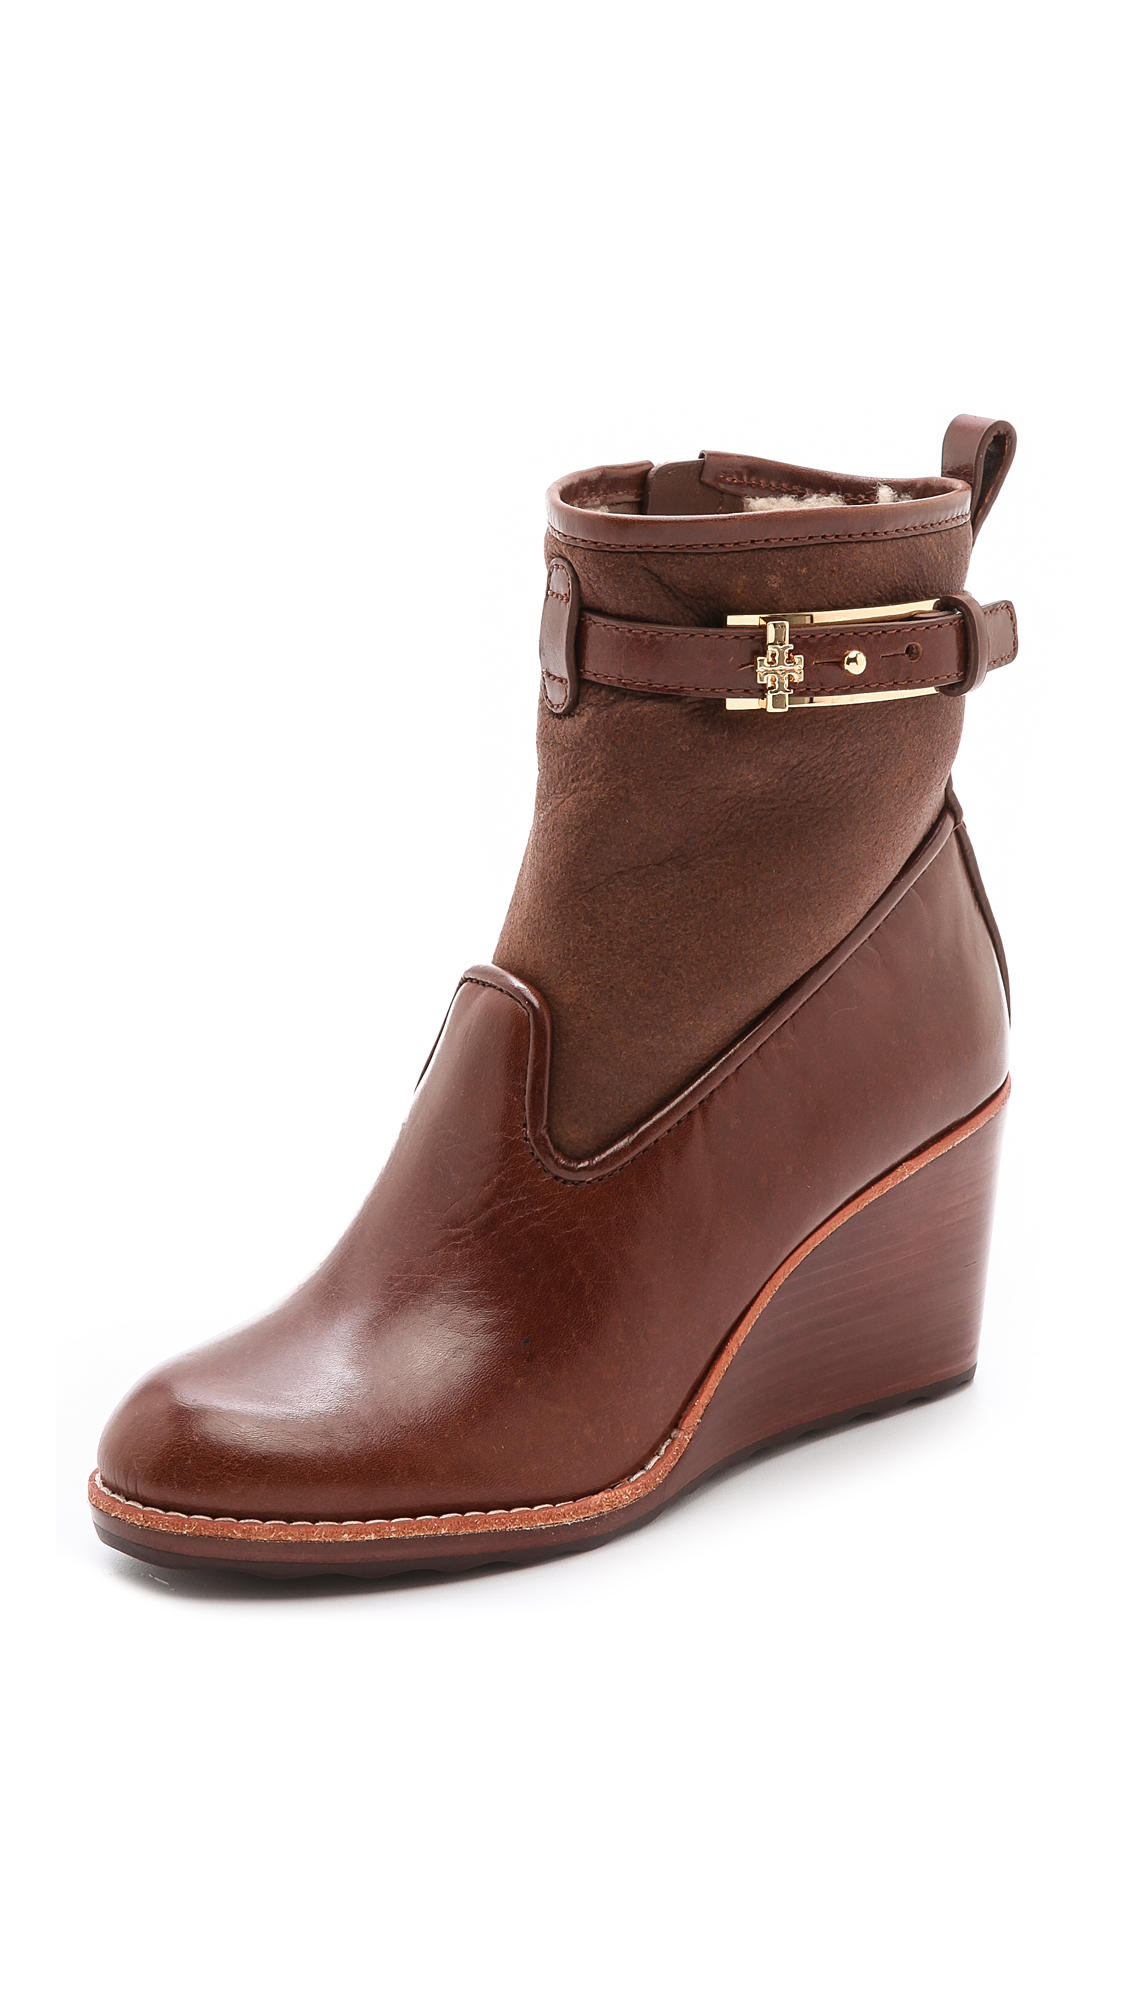 45e78d68423e Tory Burch Primrose Wedge Booties